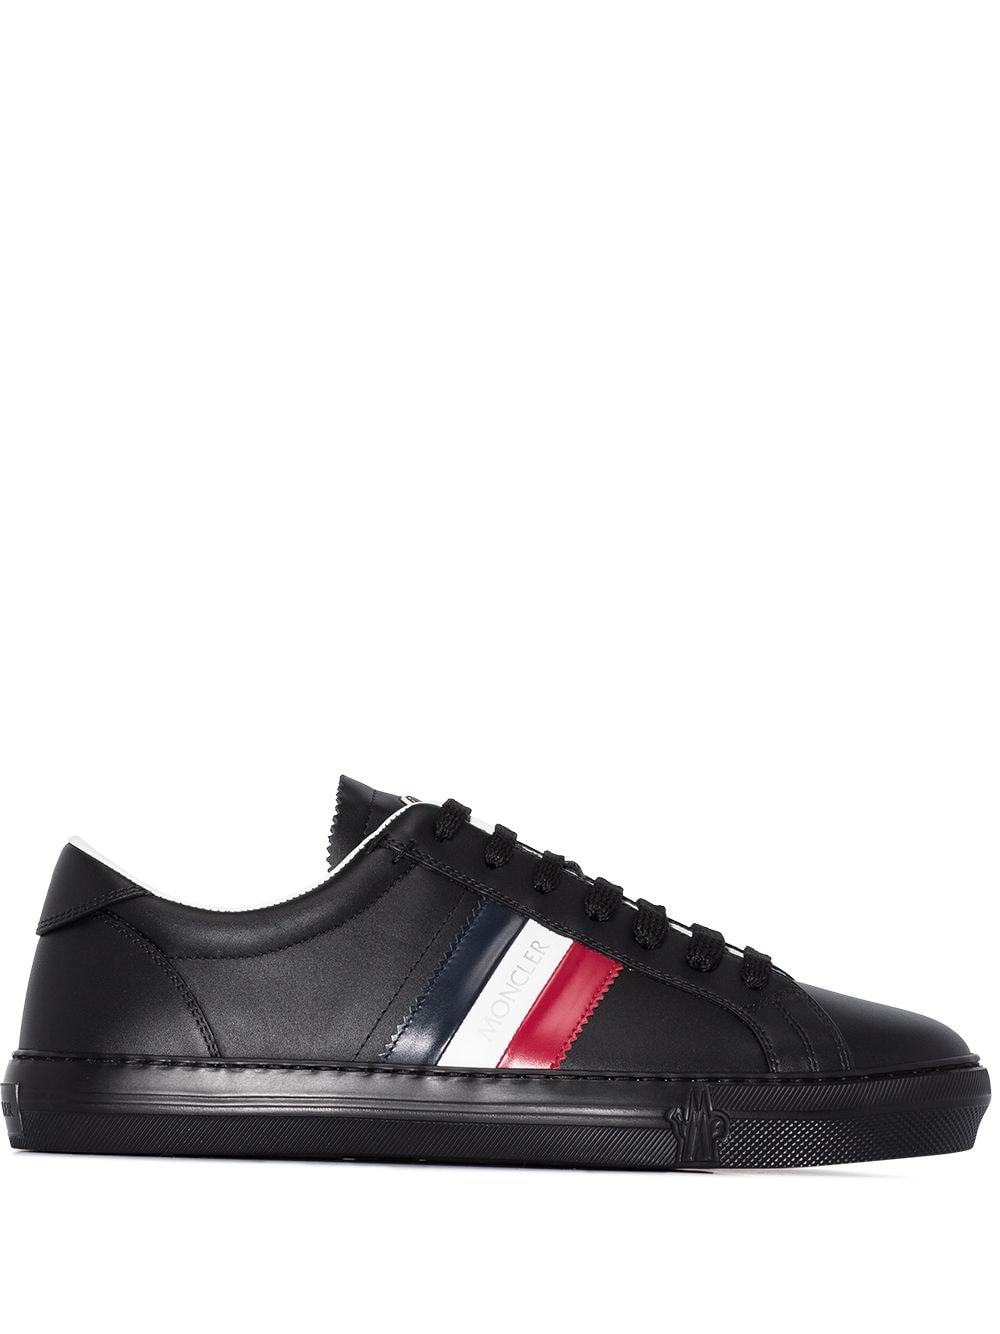 MONCLER New Monaco Stripe-Detail Sneakers Black